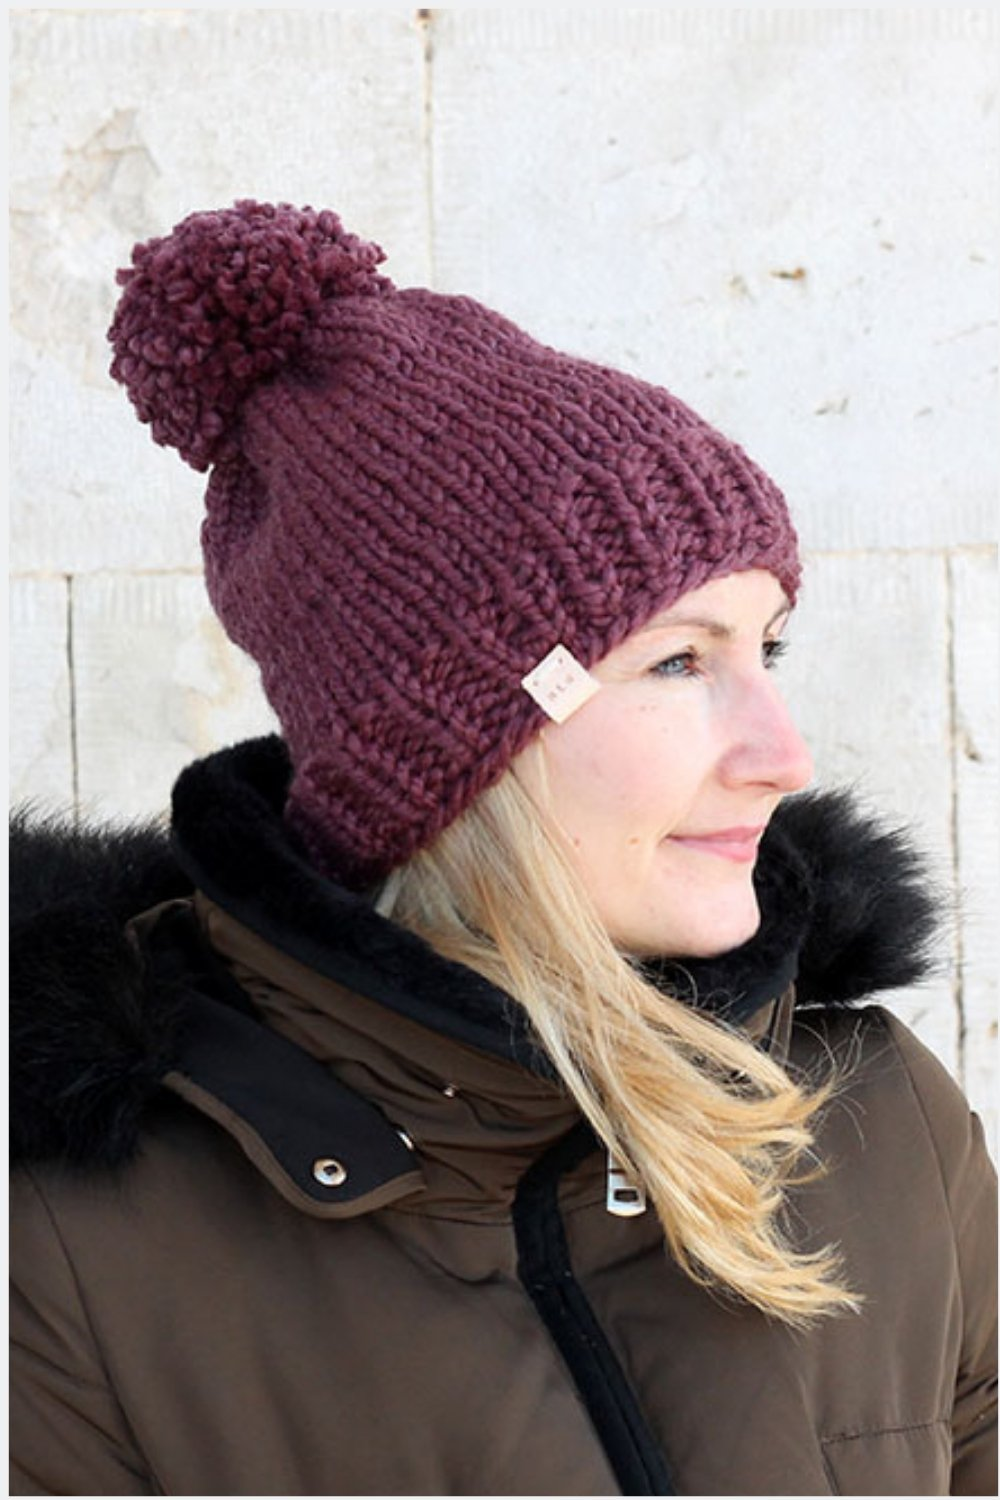 How To Knit A Hat With Circular Needles